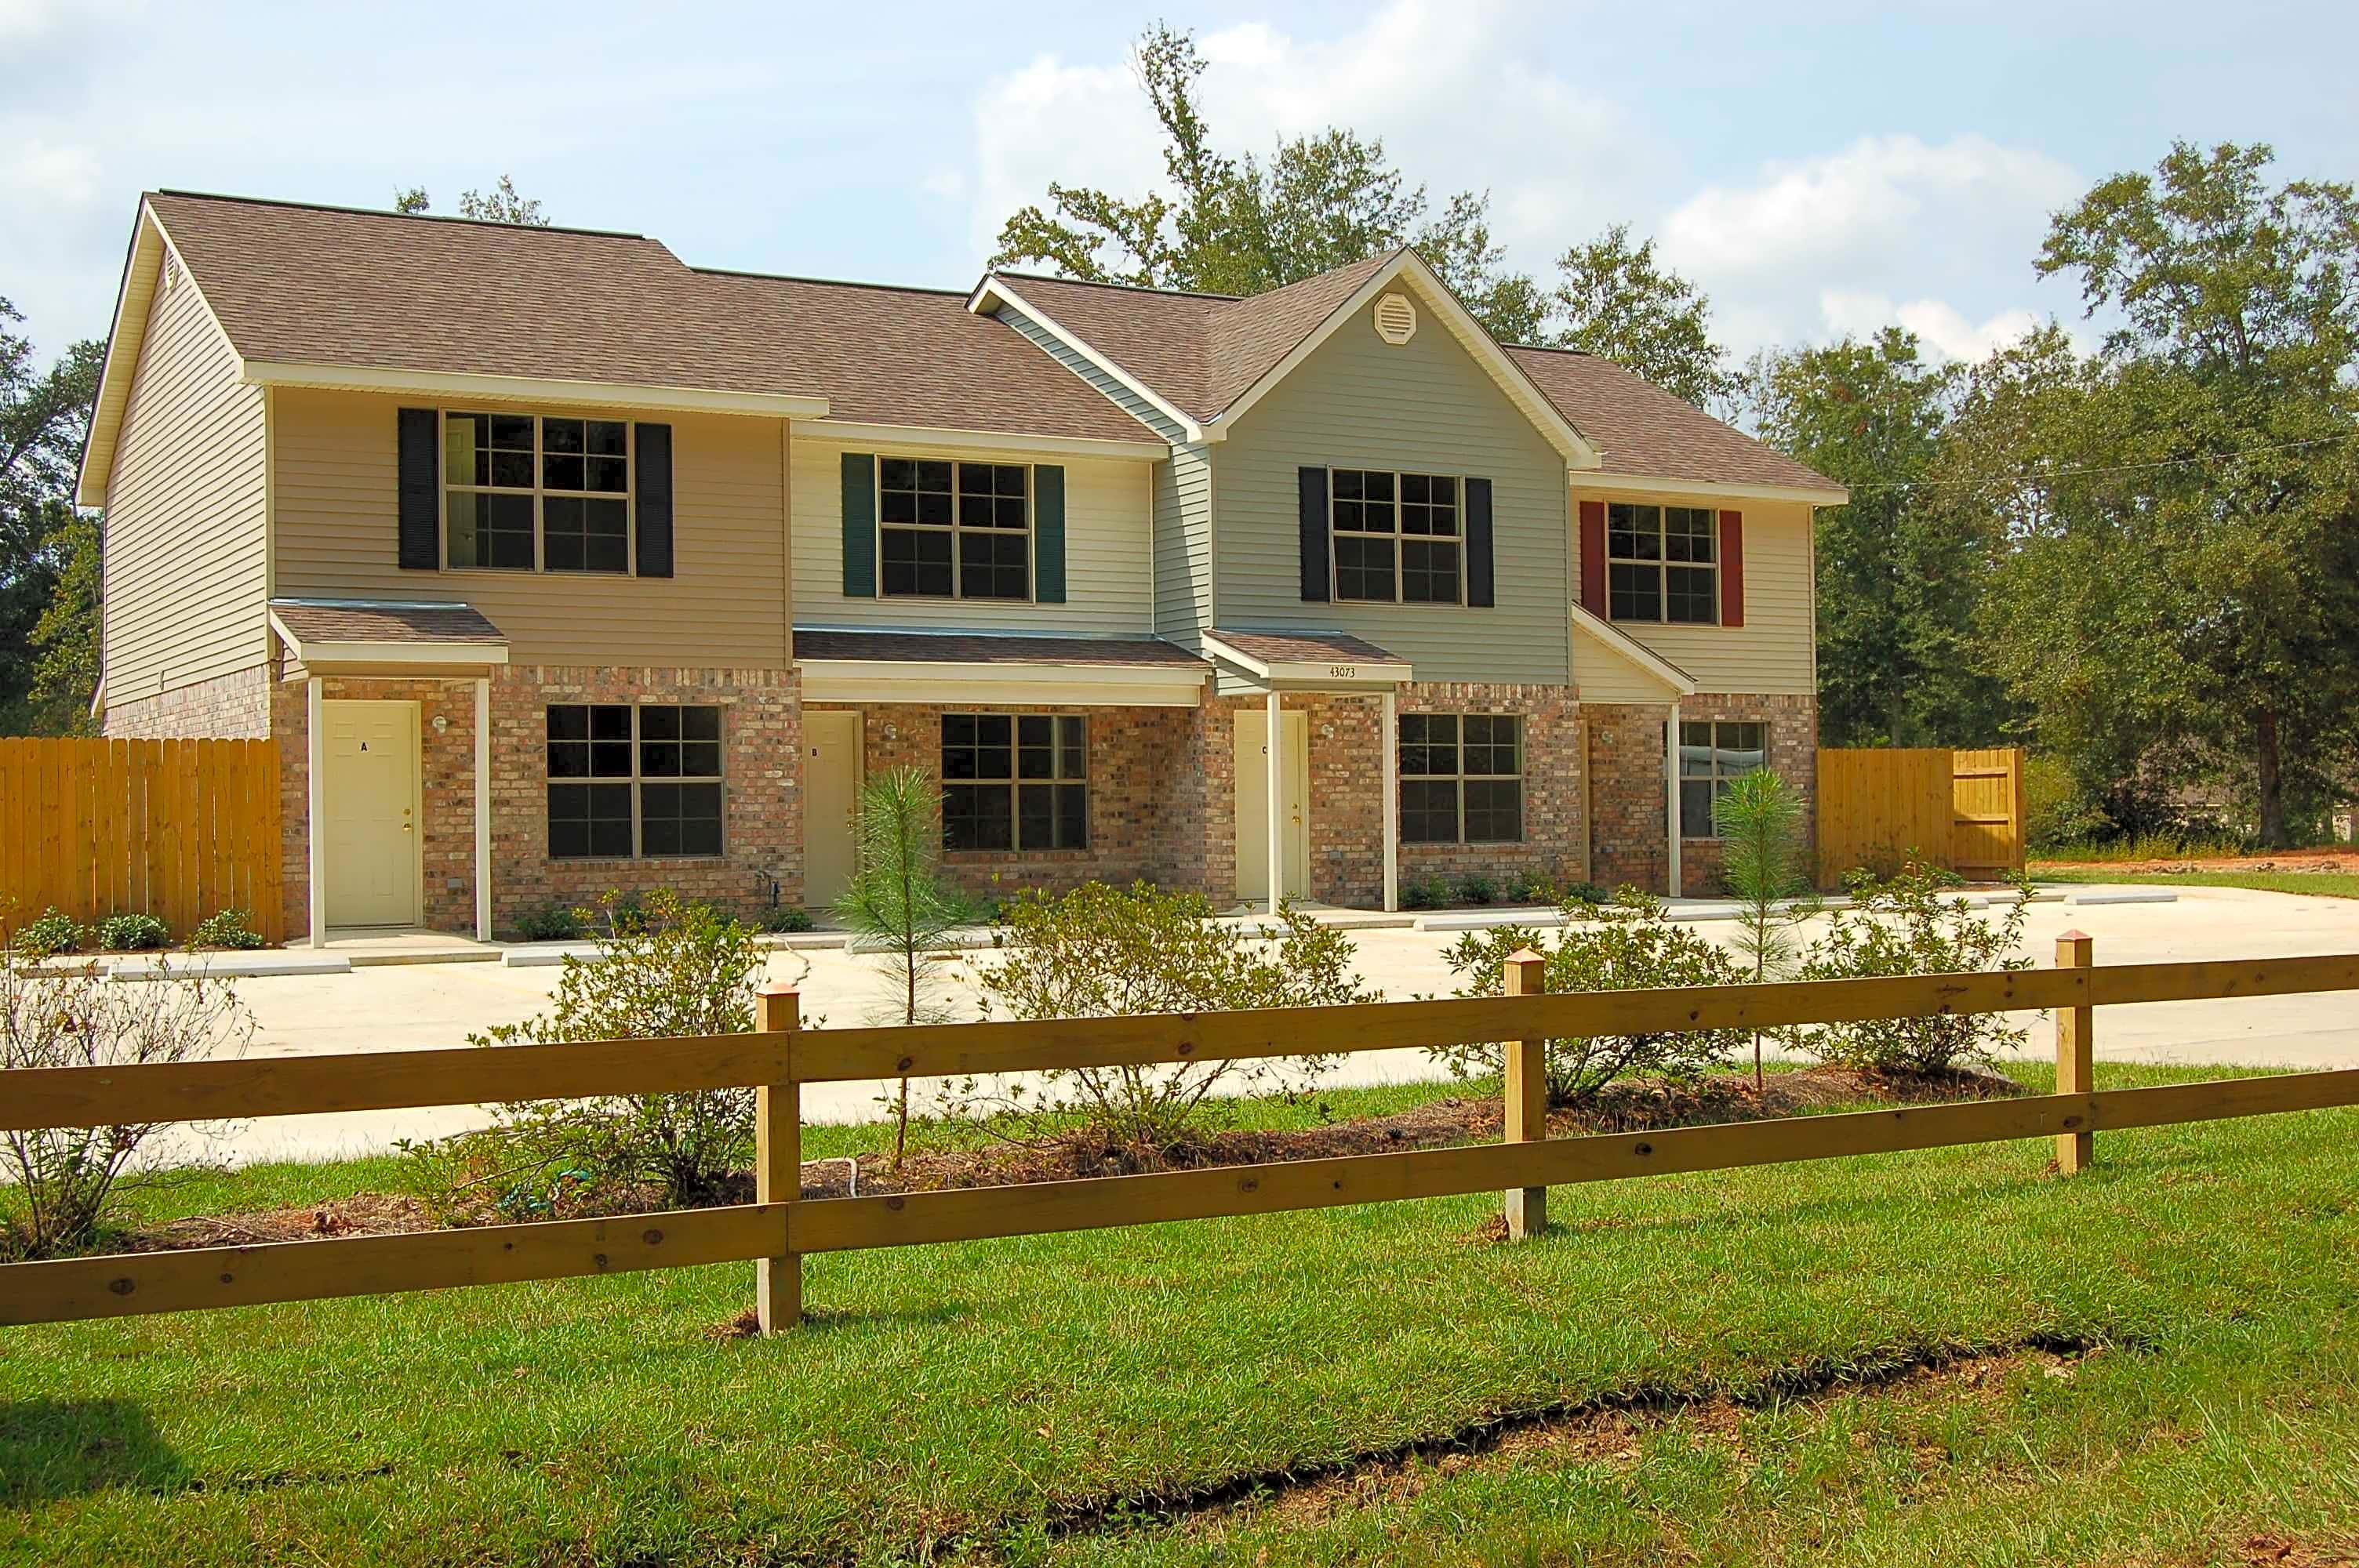 Louisiana houses for rent in louisiana homes for rent apartments rental properties condos la 1 bedroom apartments for rent in hammond la